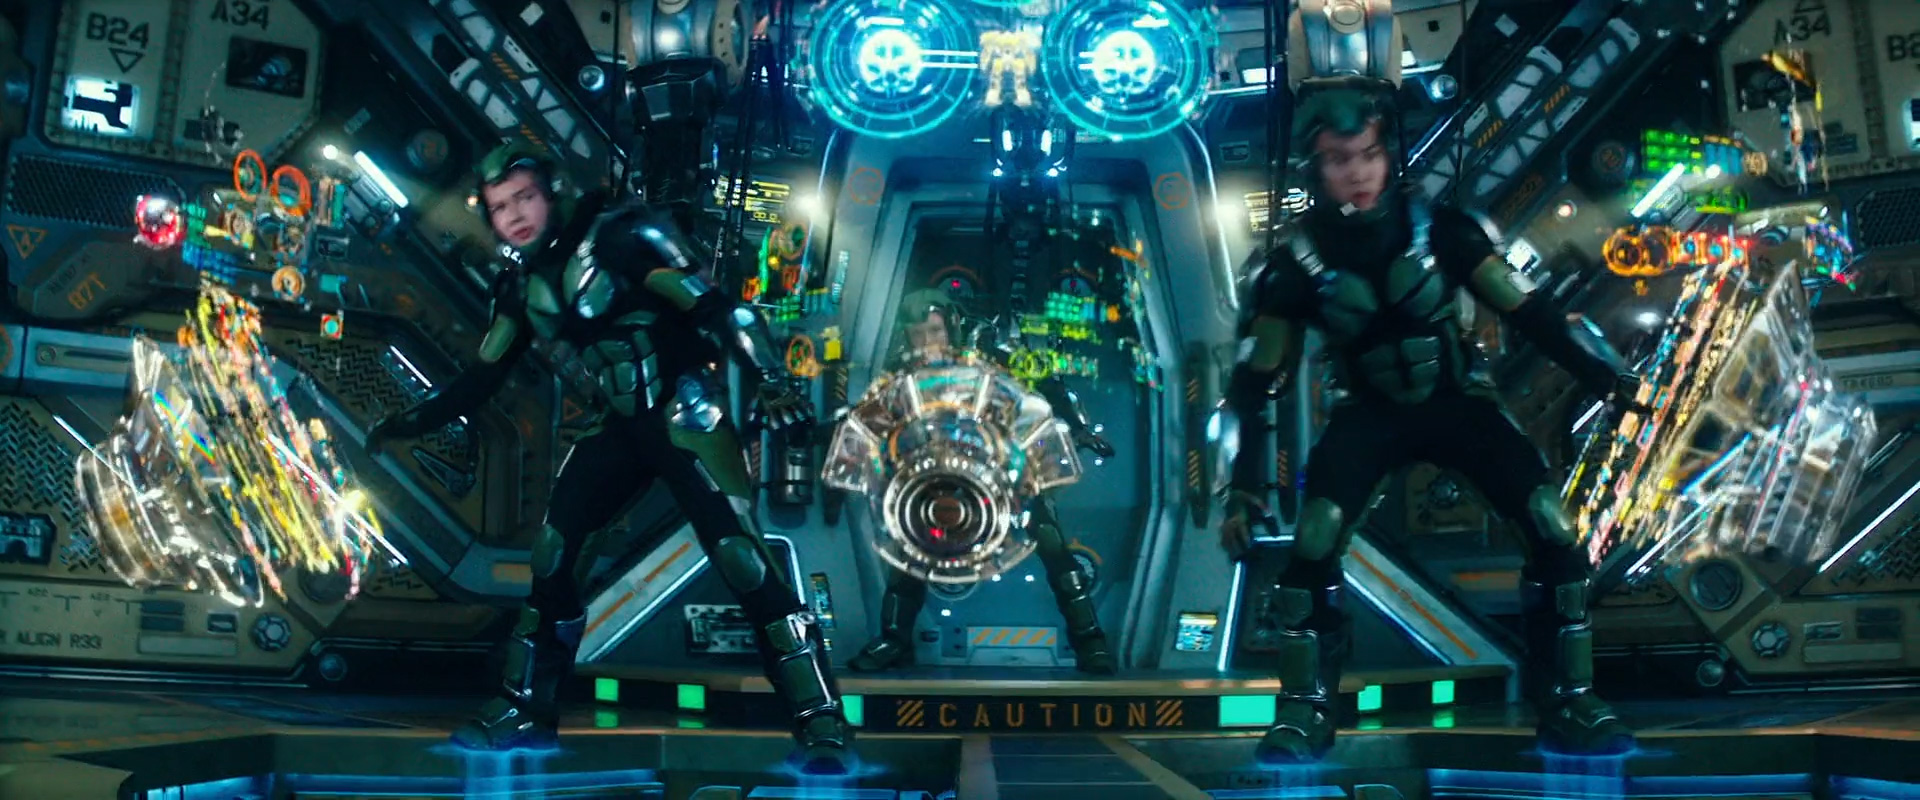 Pacific Rim Uprising_Stills_011